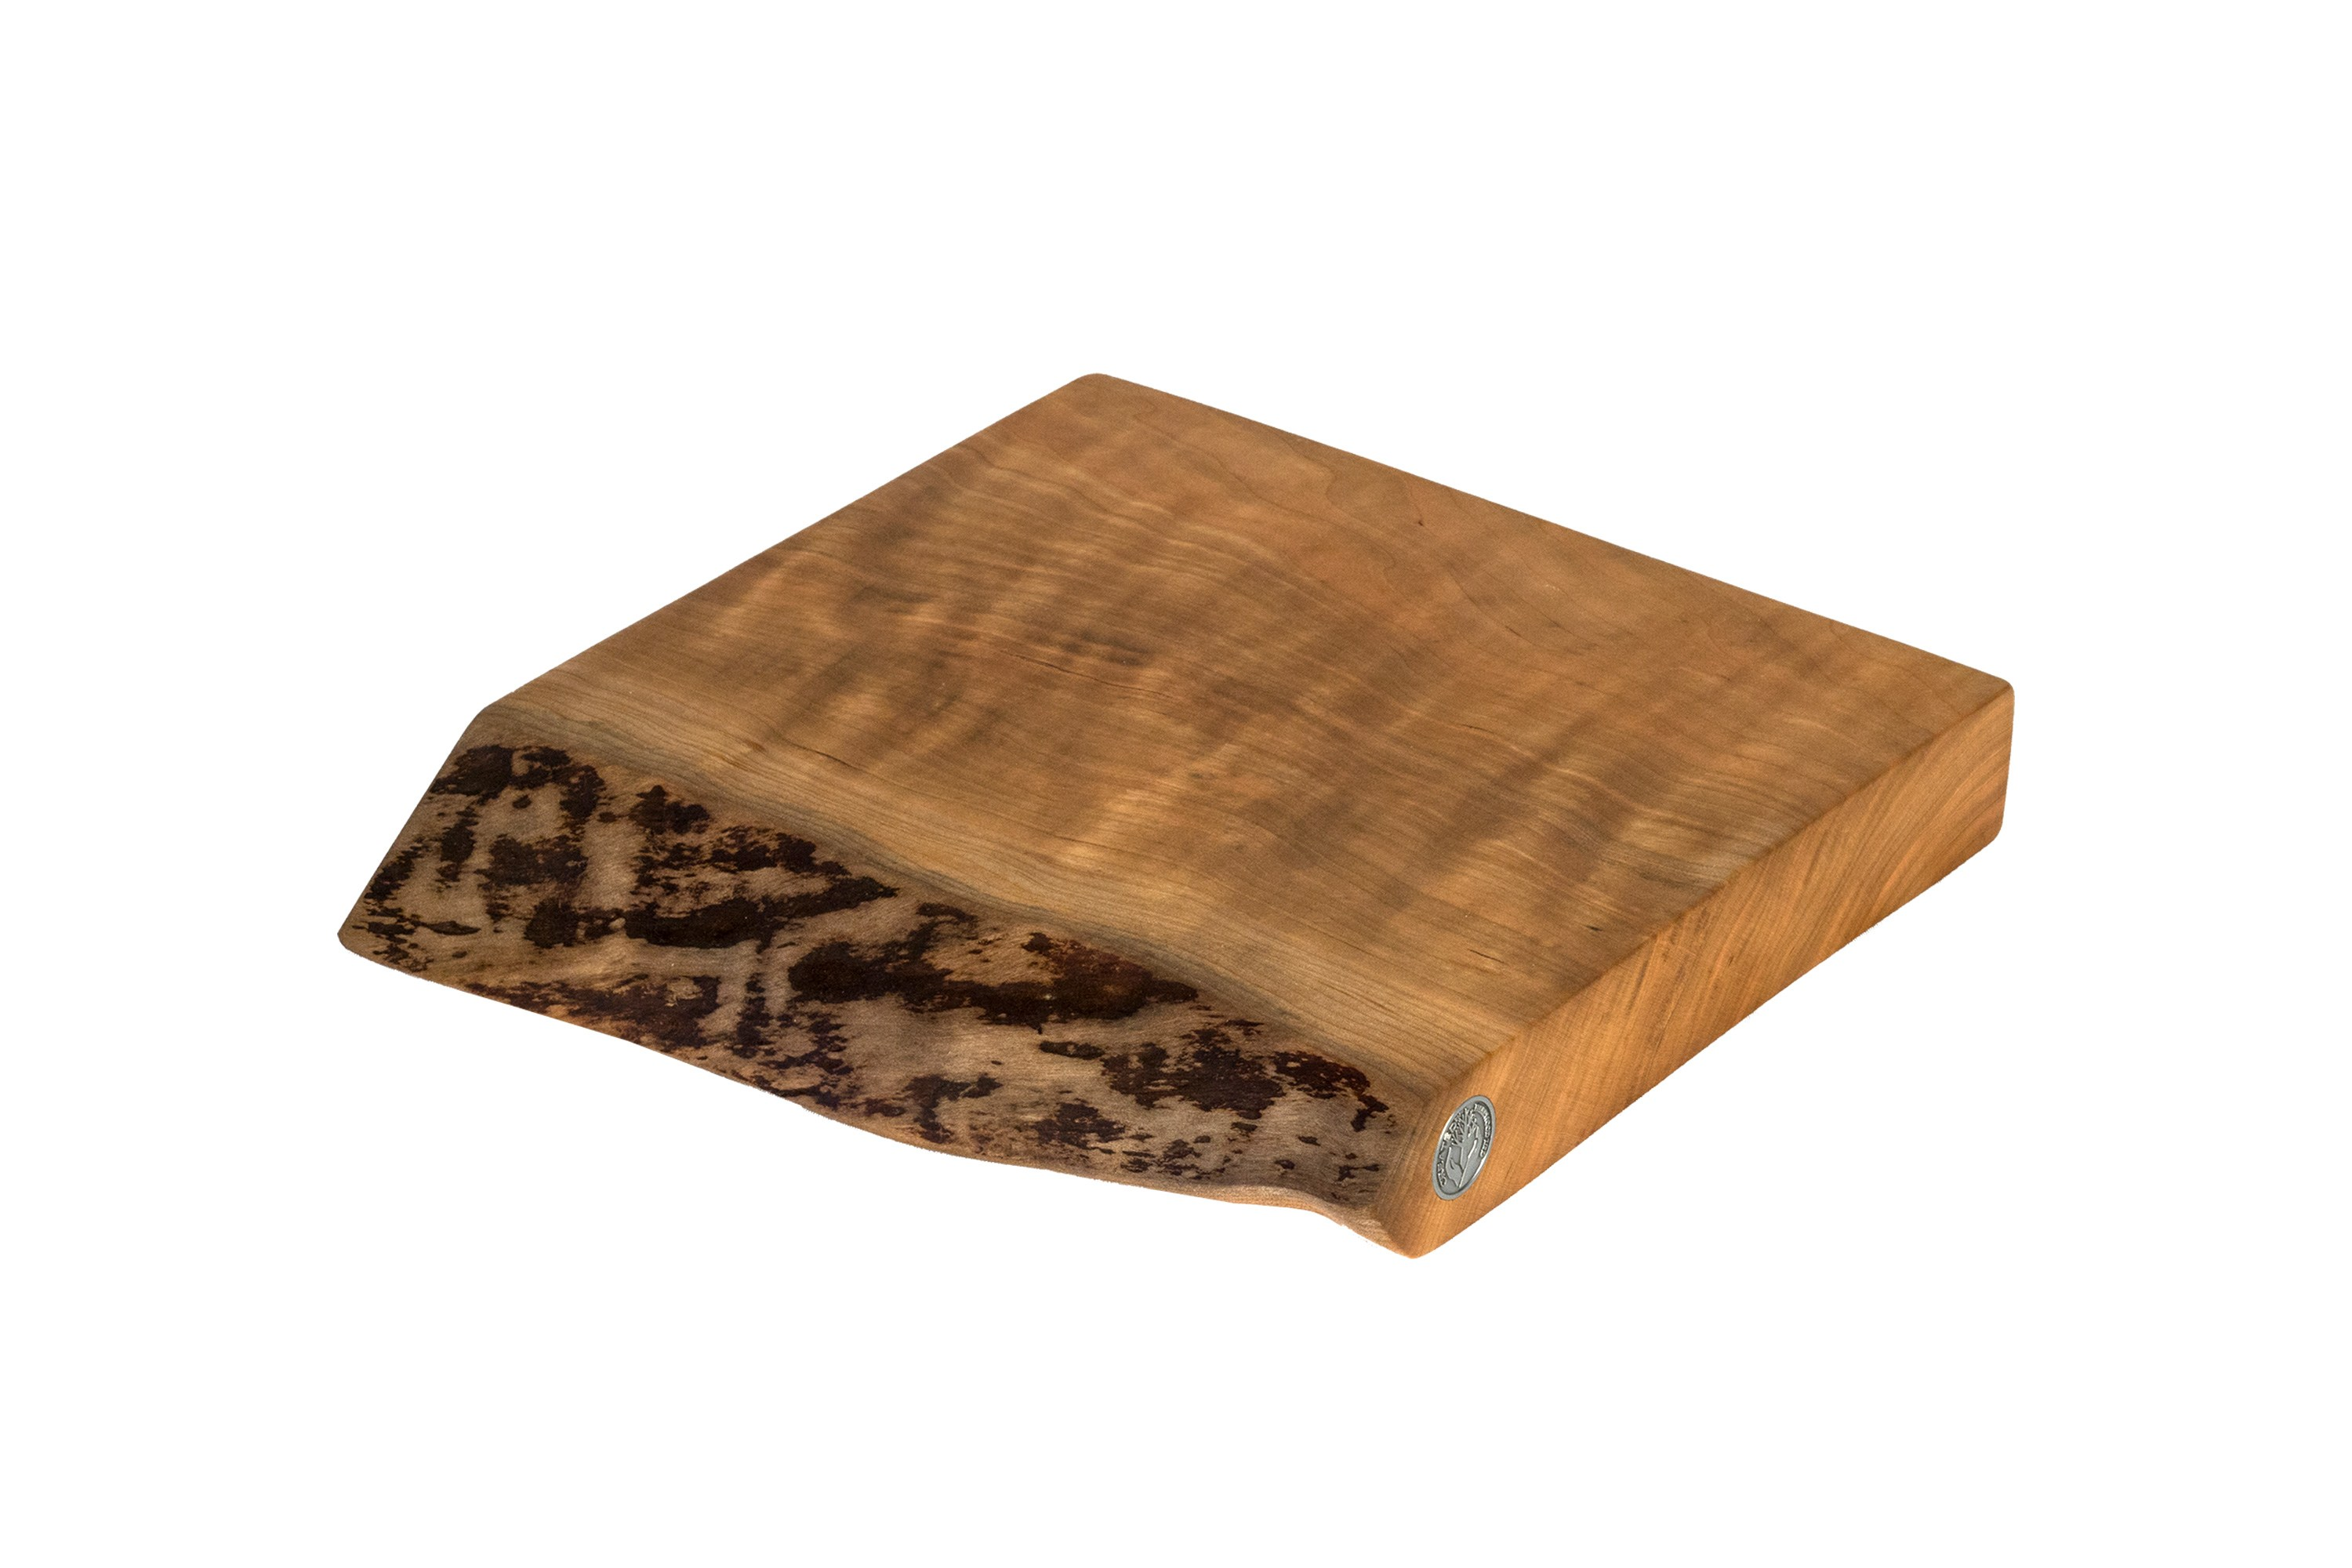 Live Edge Cherry Cutting Board #068- 11.75